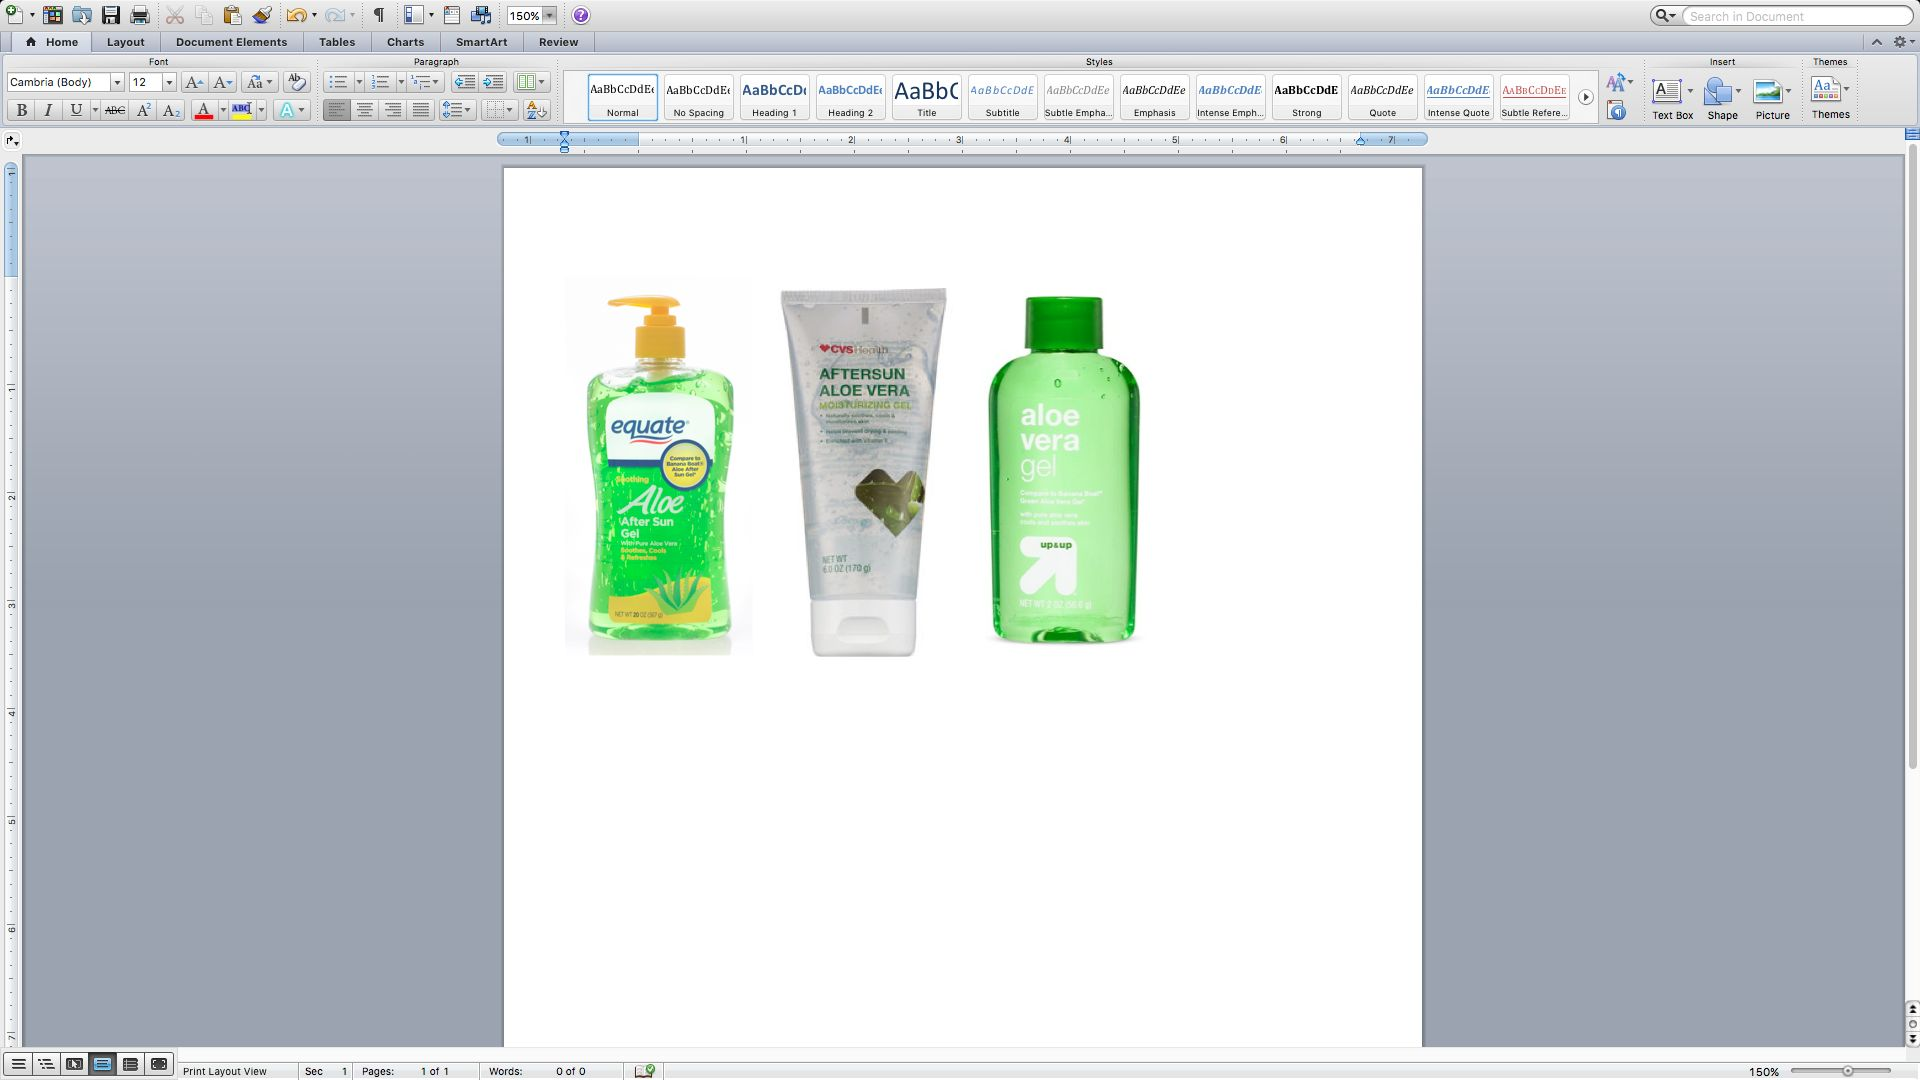 Testing on store-brand aloe vera products sold at (from left) Walmart, CVS and Target found no evidence of aloe, according to